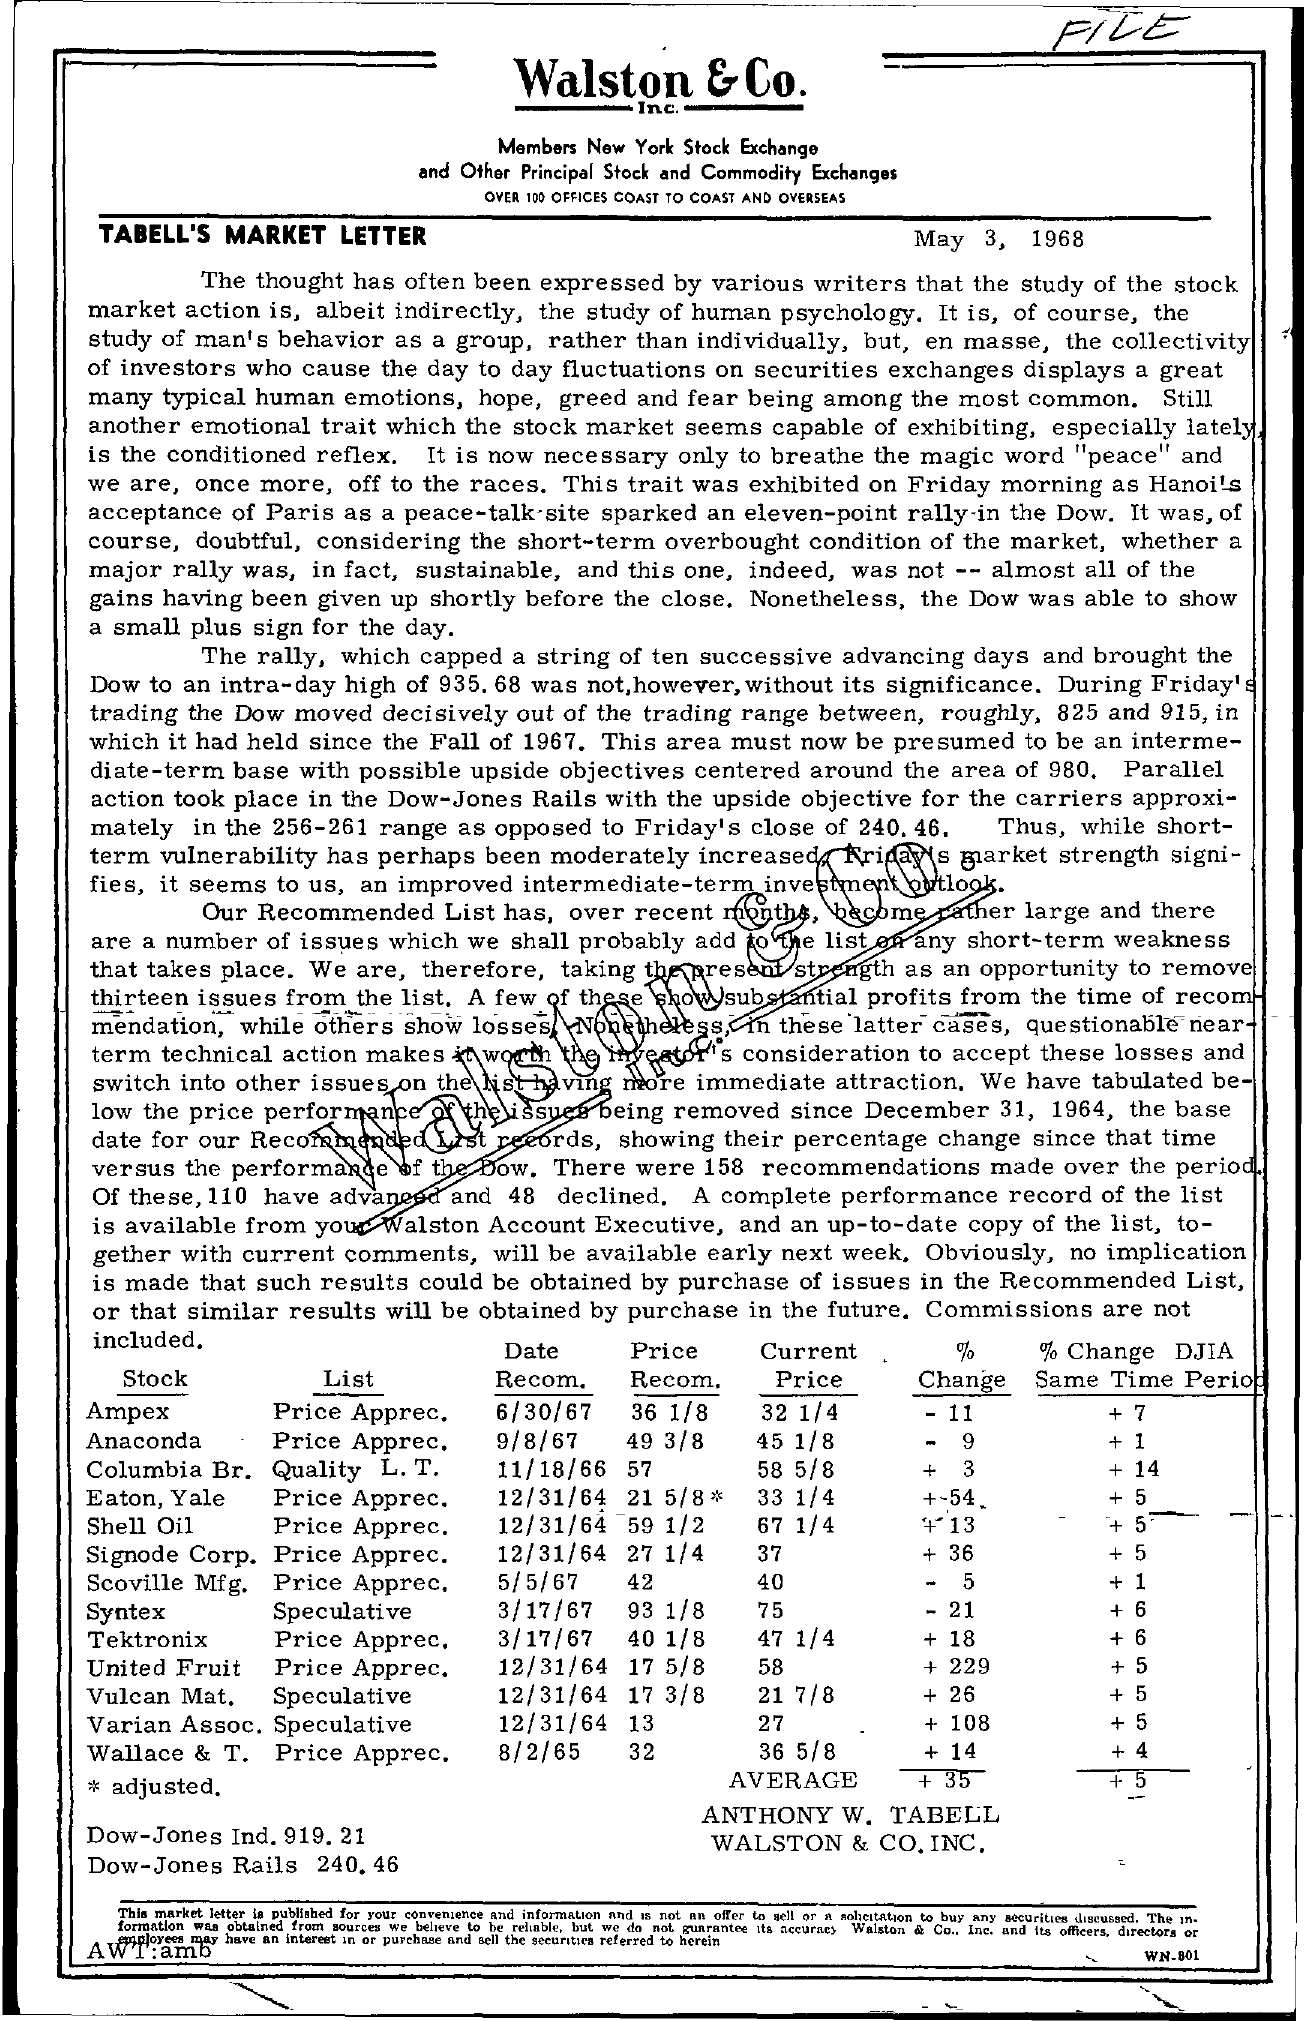 Tabell's Market Letter - May 03, 1968